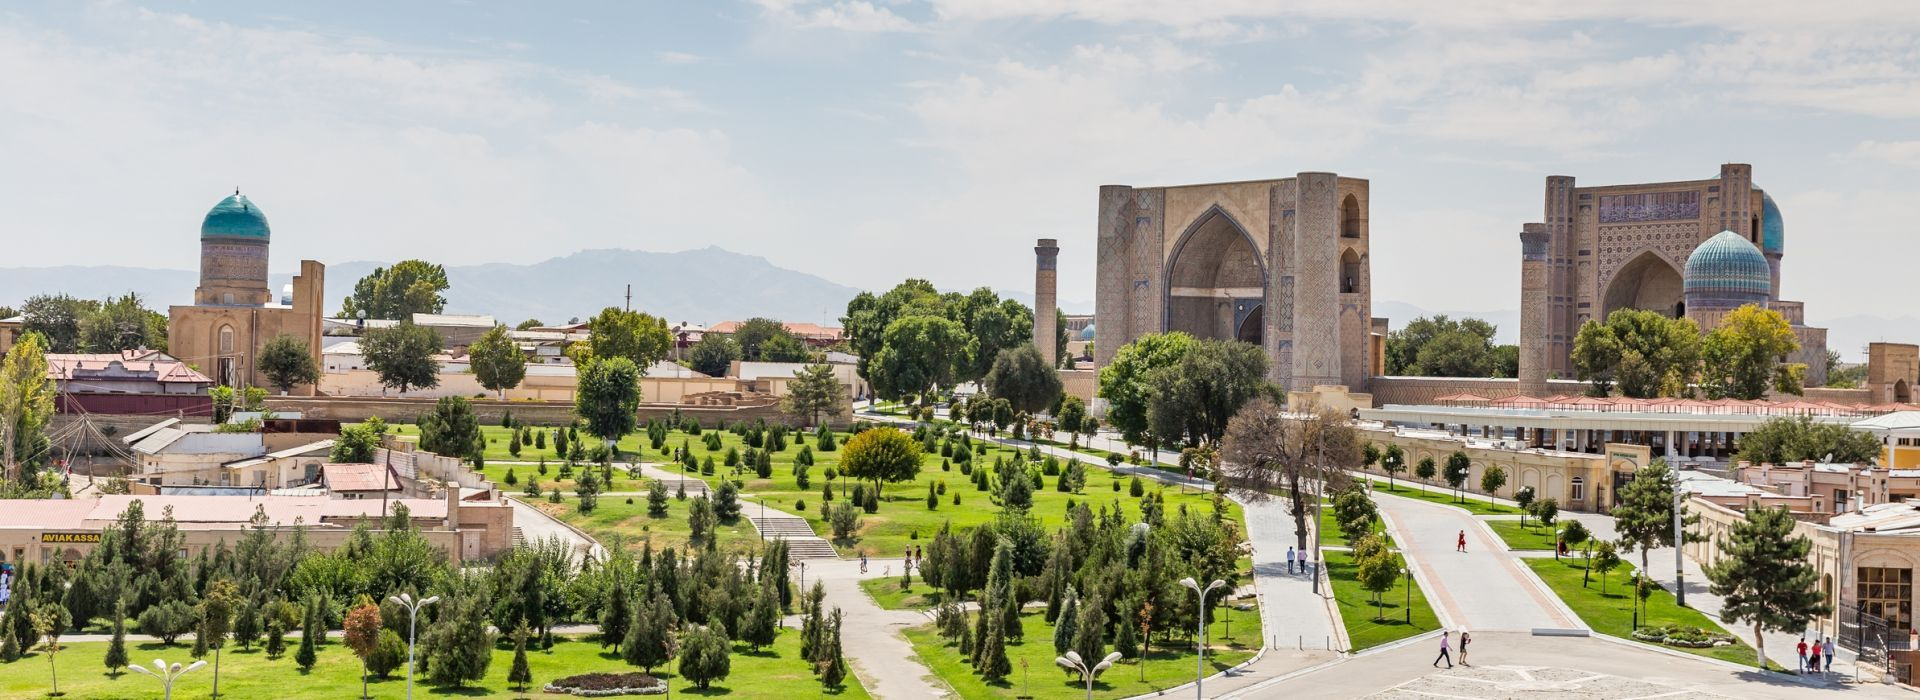 Sightseeing, attractions, culture and history Tours in Uzbekistan